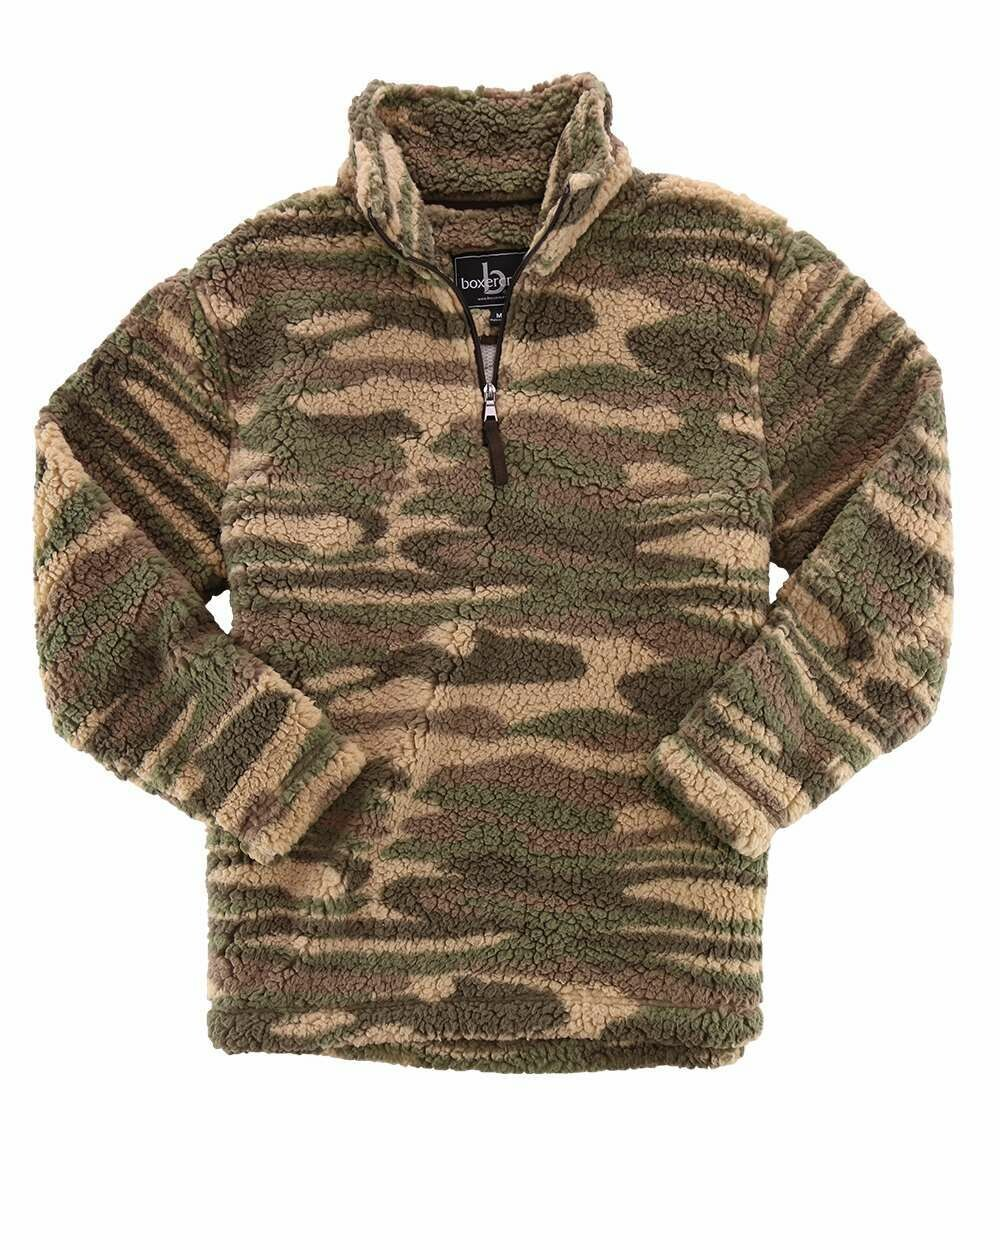 Unisex Camo Sherpa Fleece Quarter-Zip Pullover with choice of Douglass Logo or Monogram